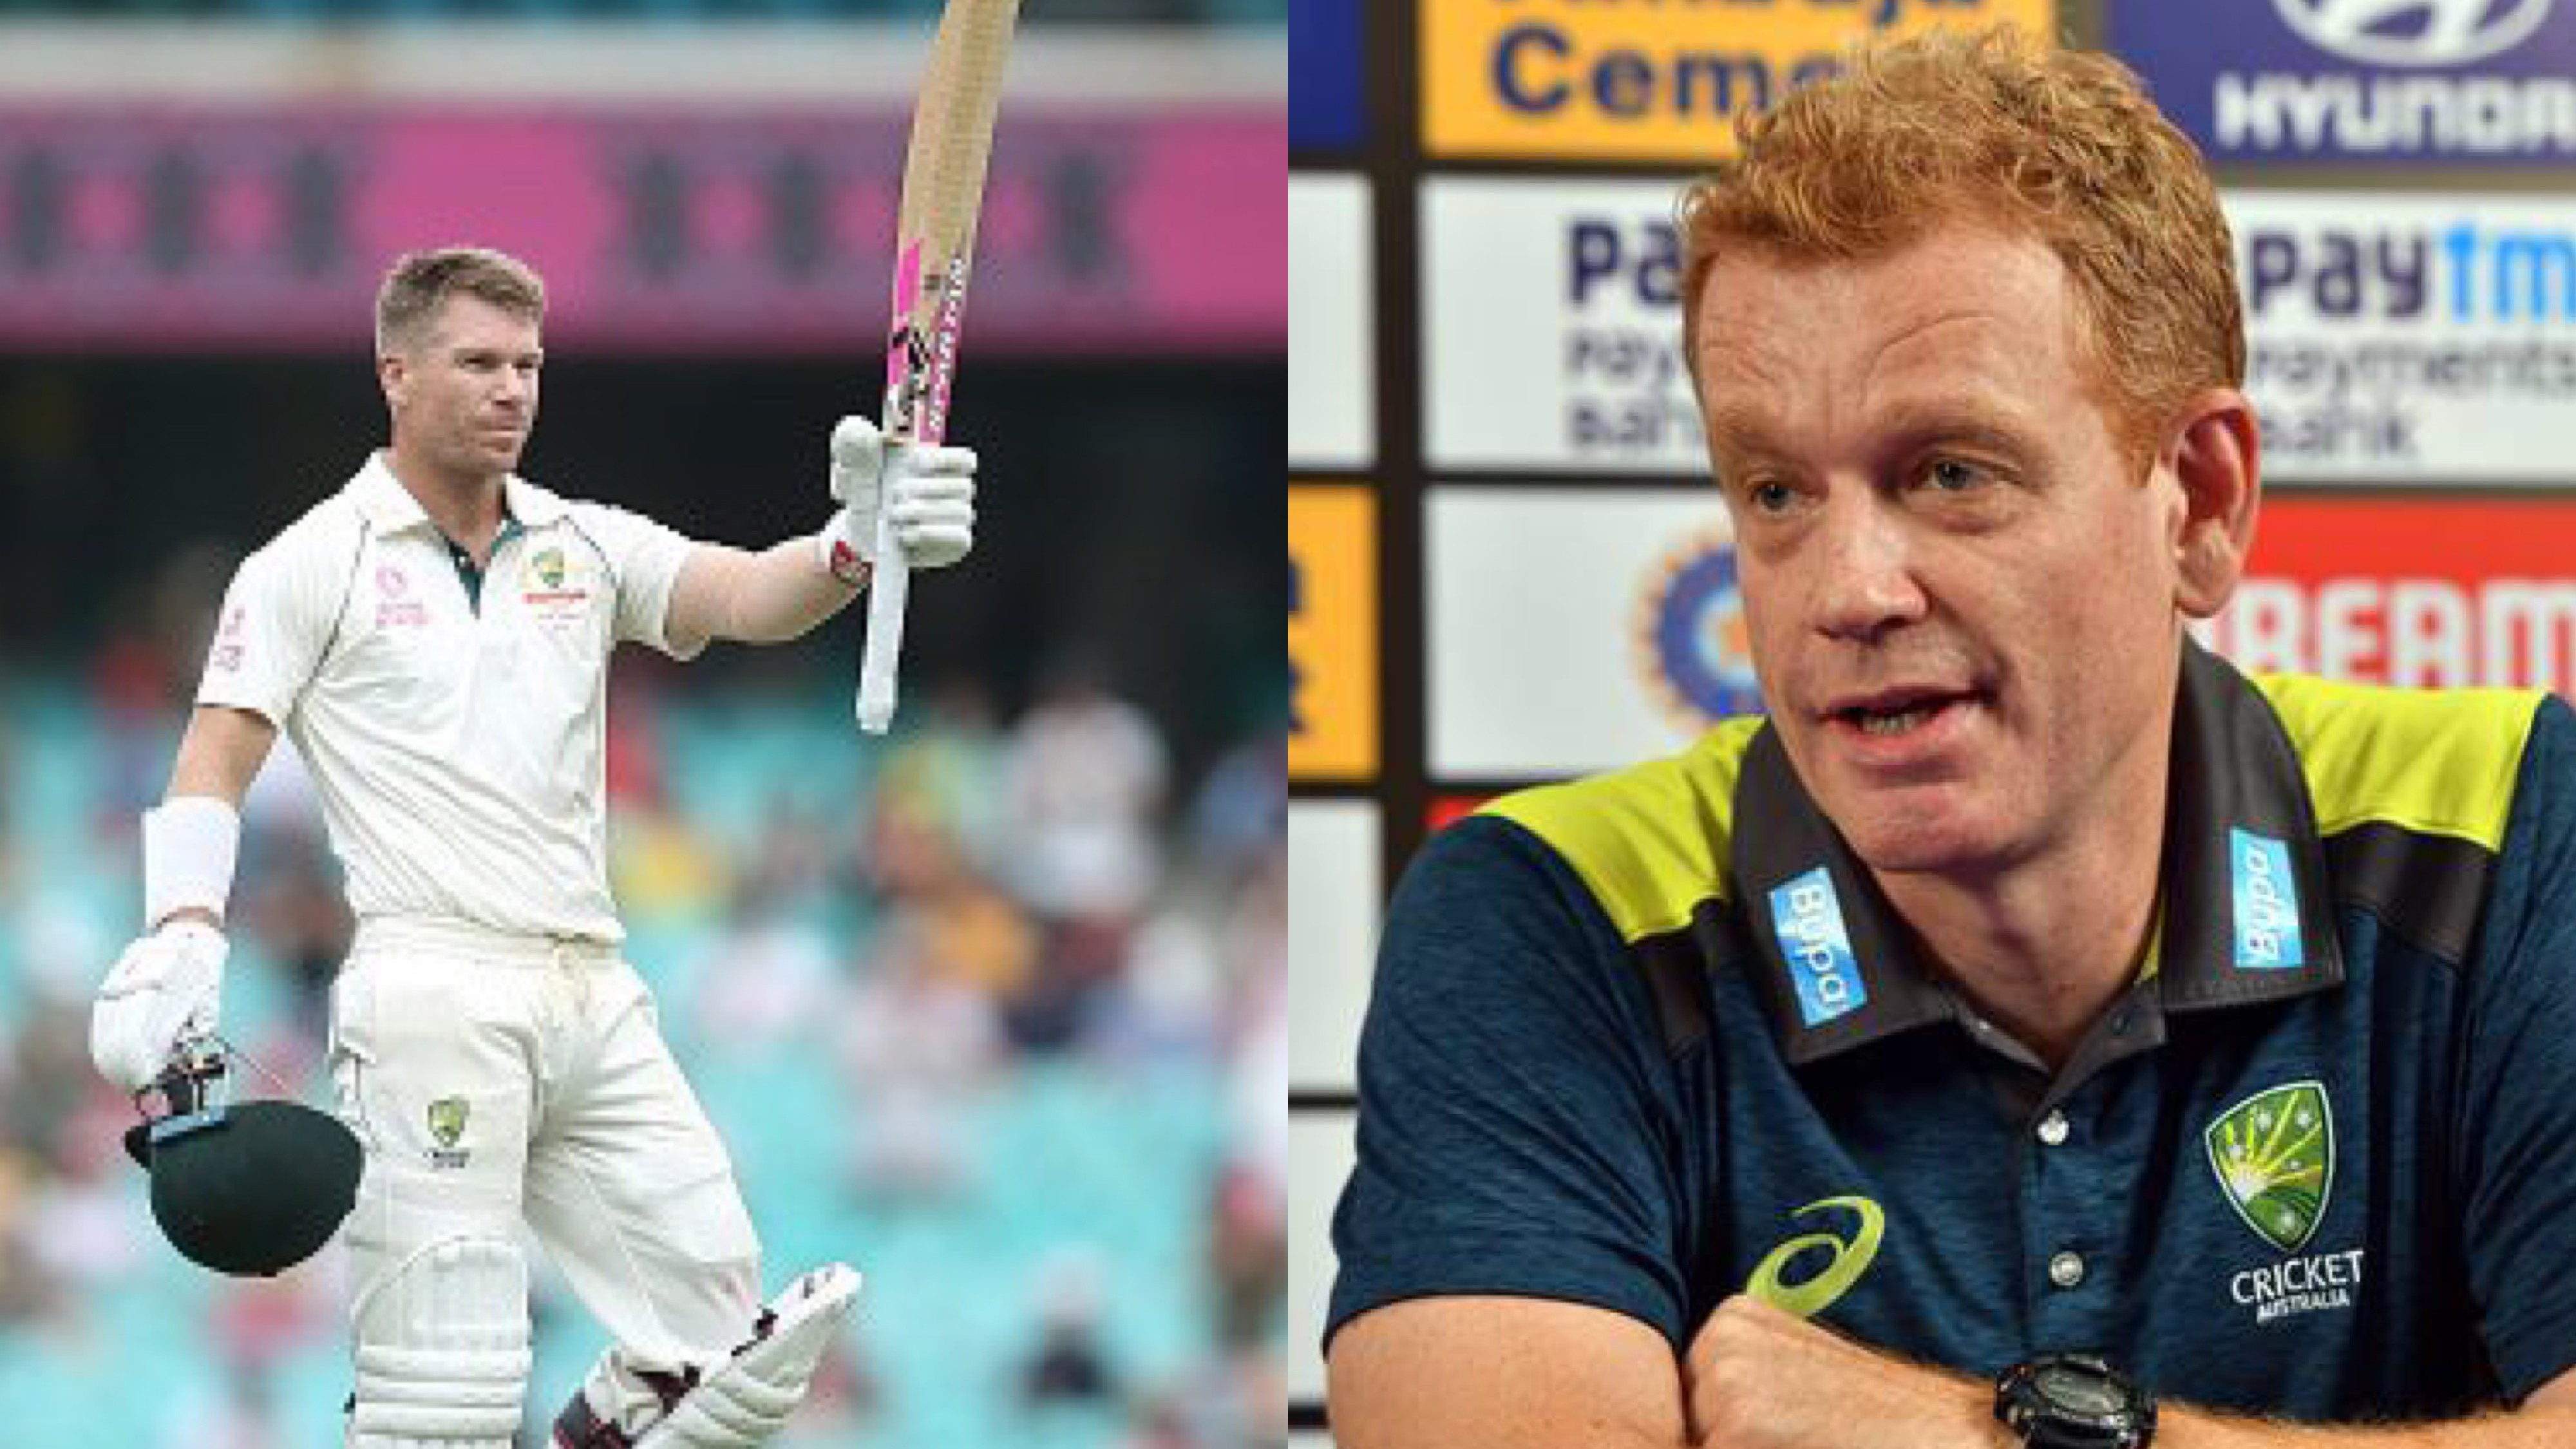 AUS v IND 2020-21: Australia willing to play Warner in Sydney even if not 100% fit: Andrew McDonald